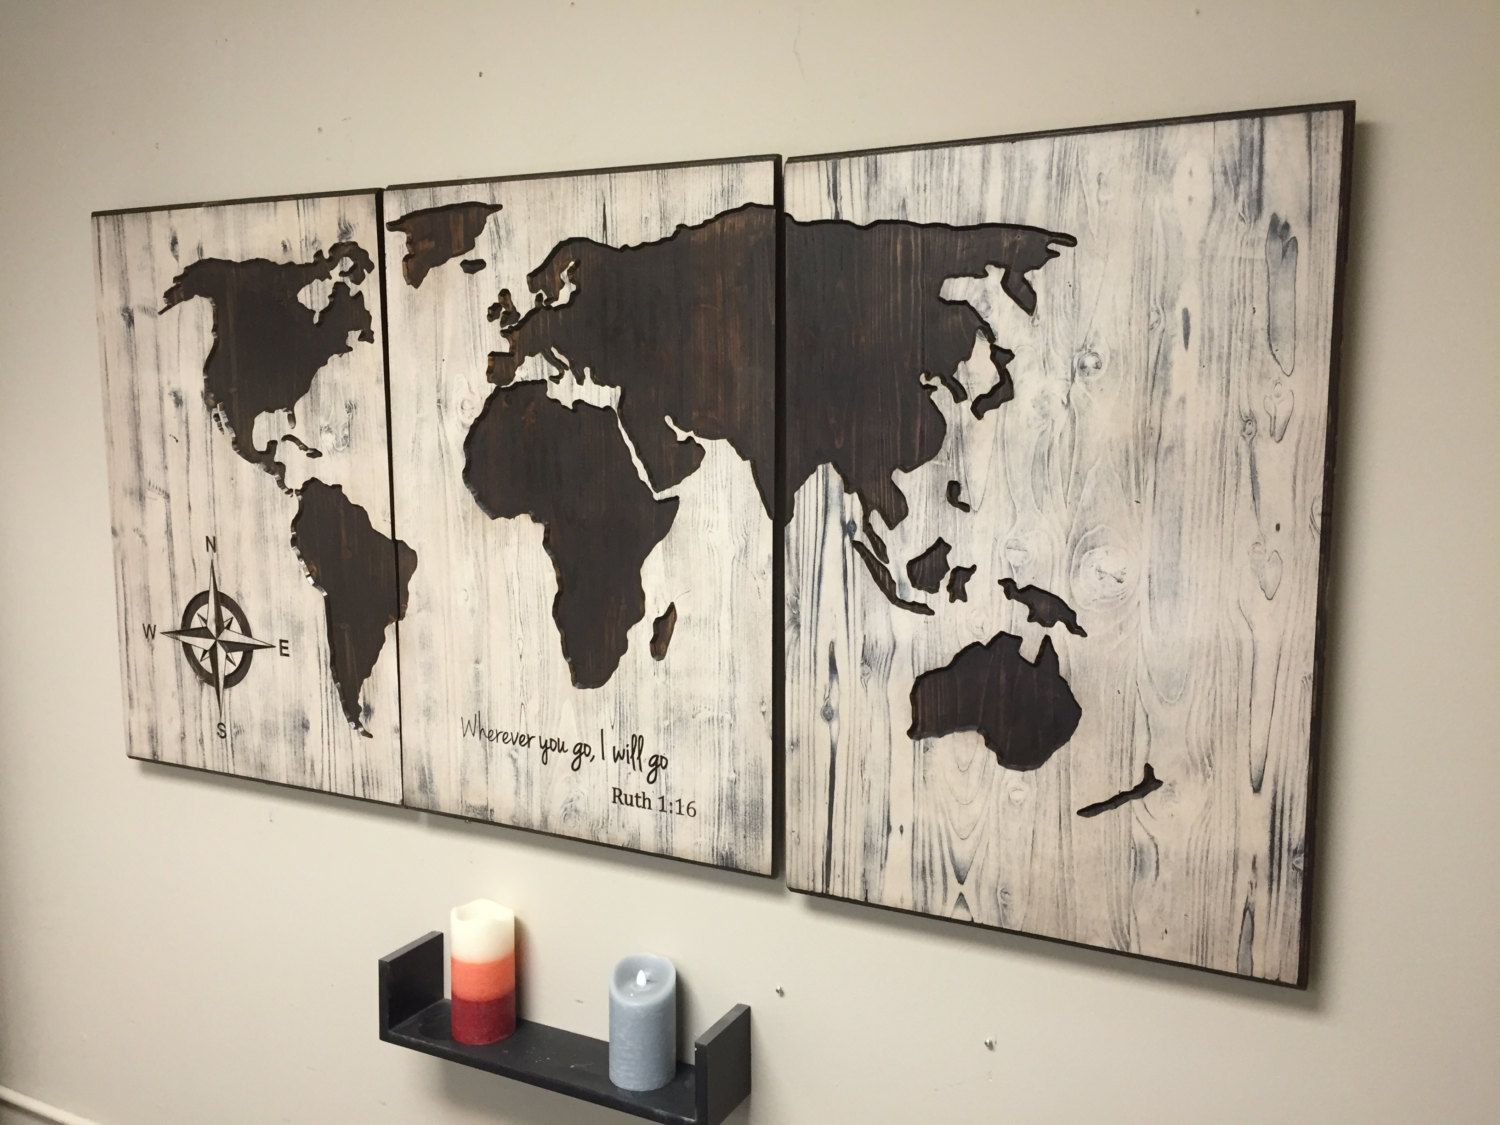 World Map Home Decor Rustic World Map Wall Art Carved Home Decor 3 Panel Map Ruth 1